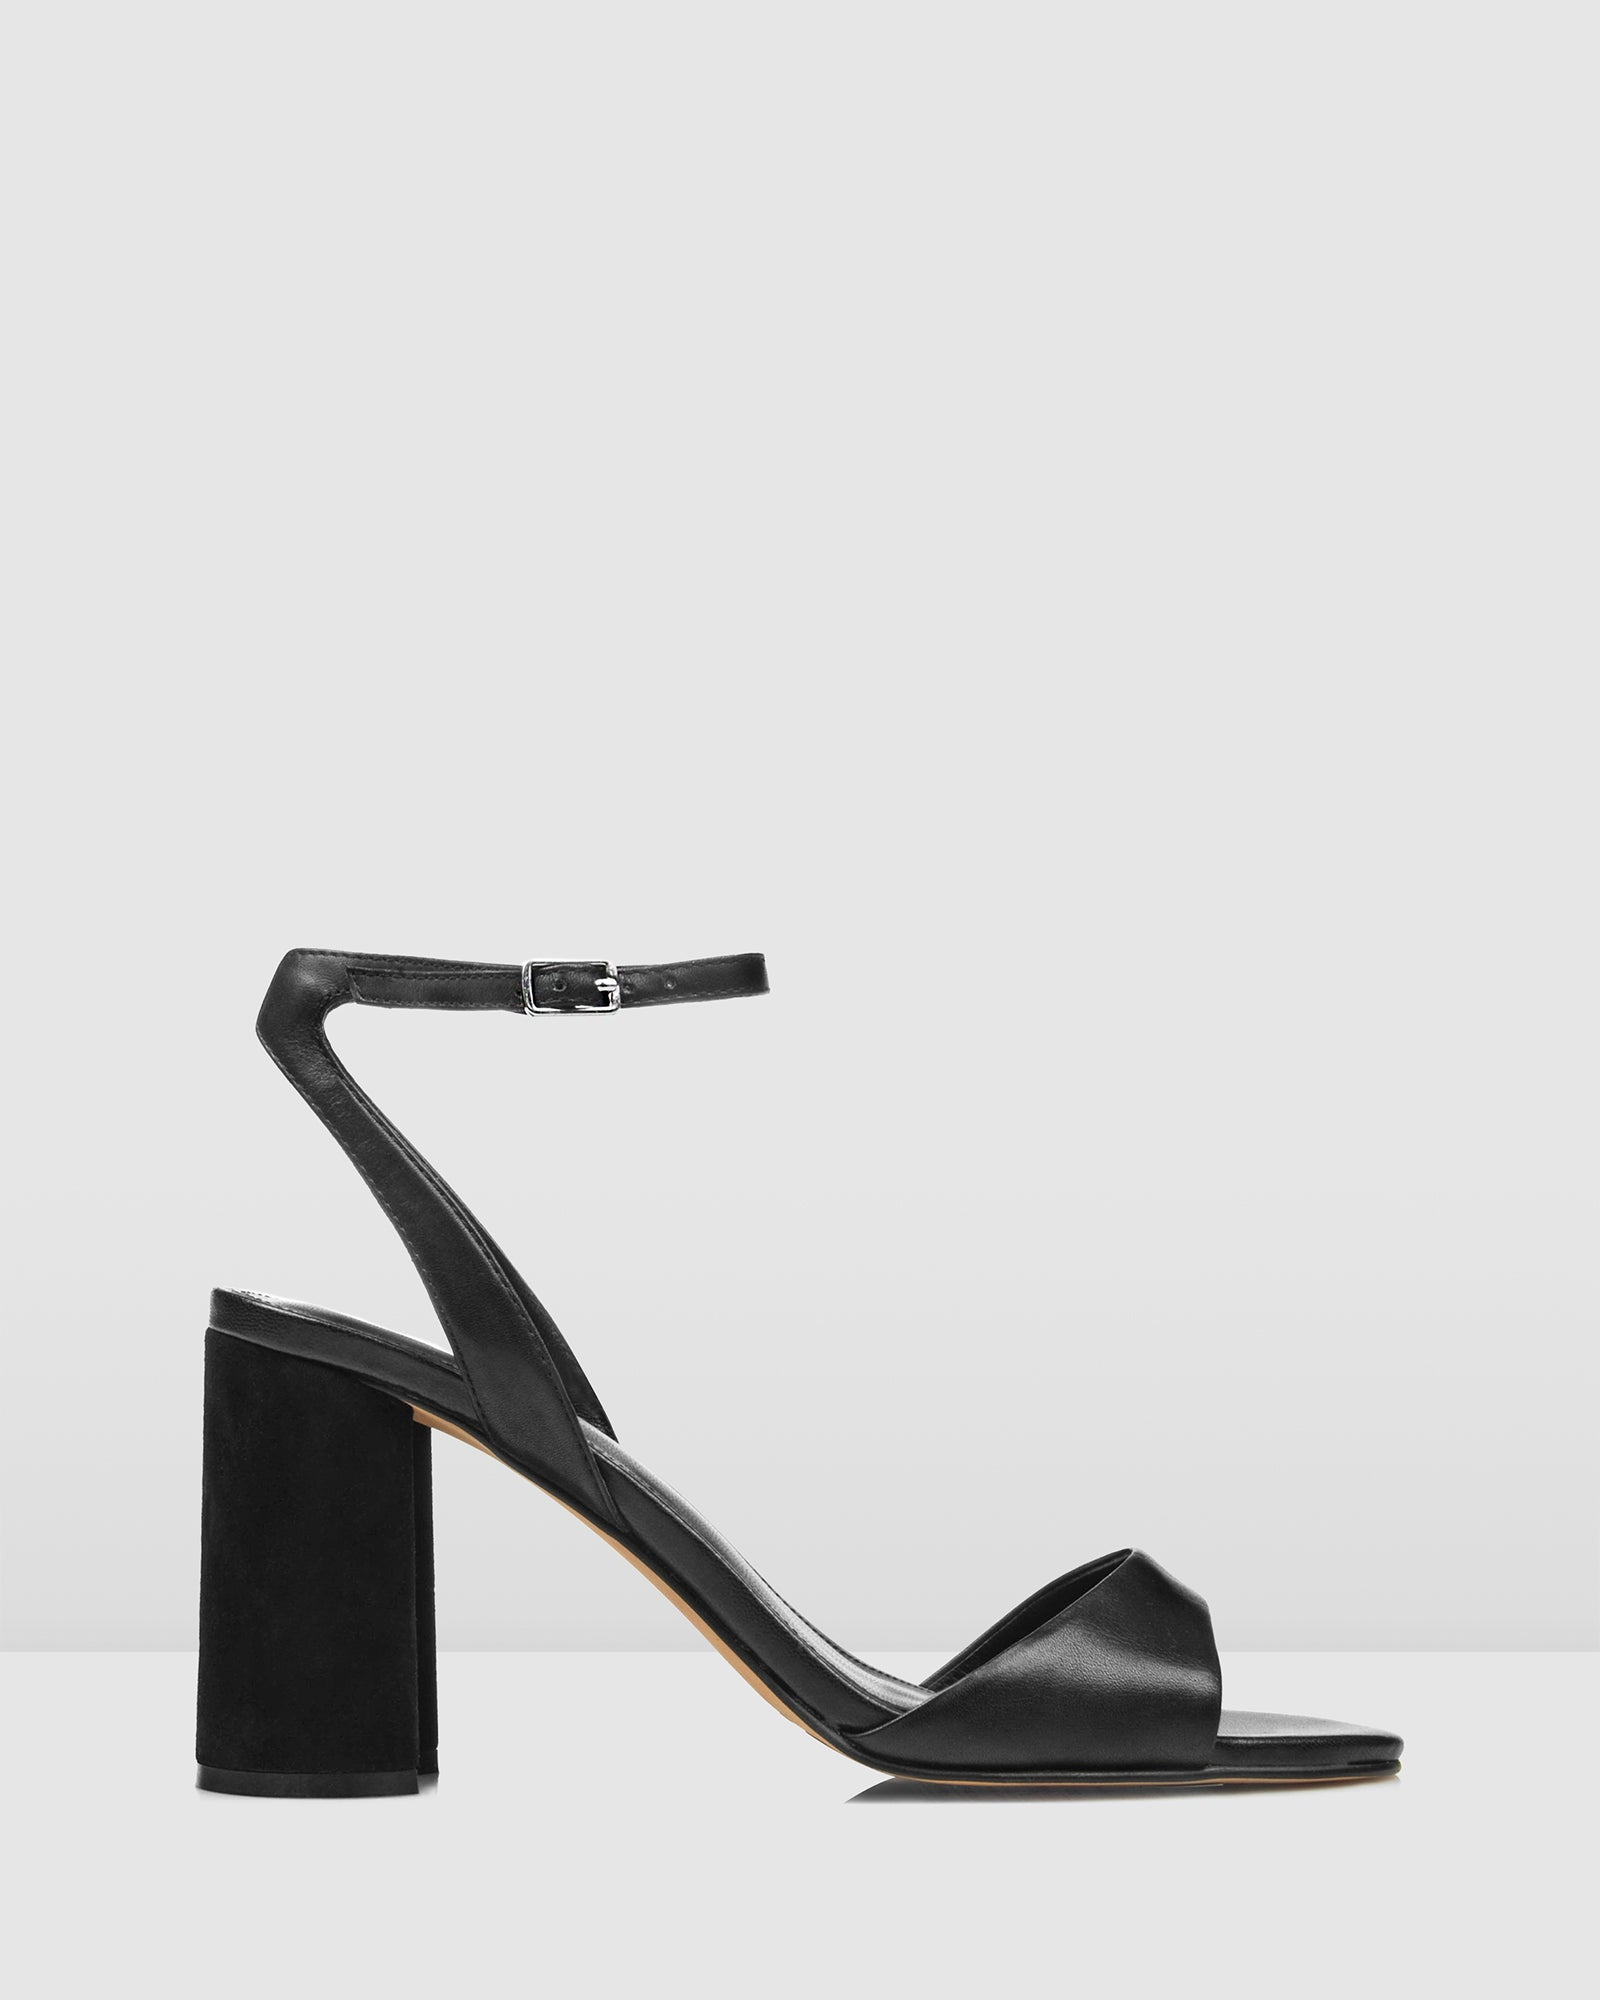 VINCENZA HIGH HEEL SANDALS BLACK LEATHER